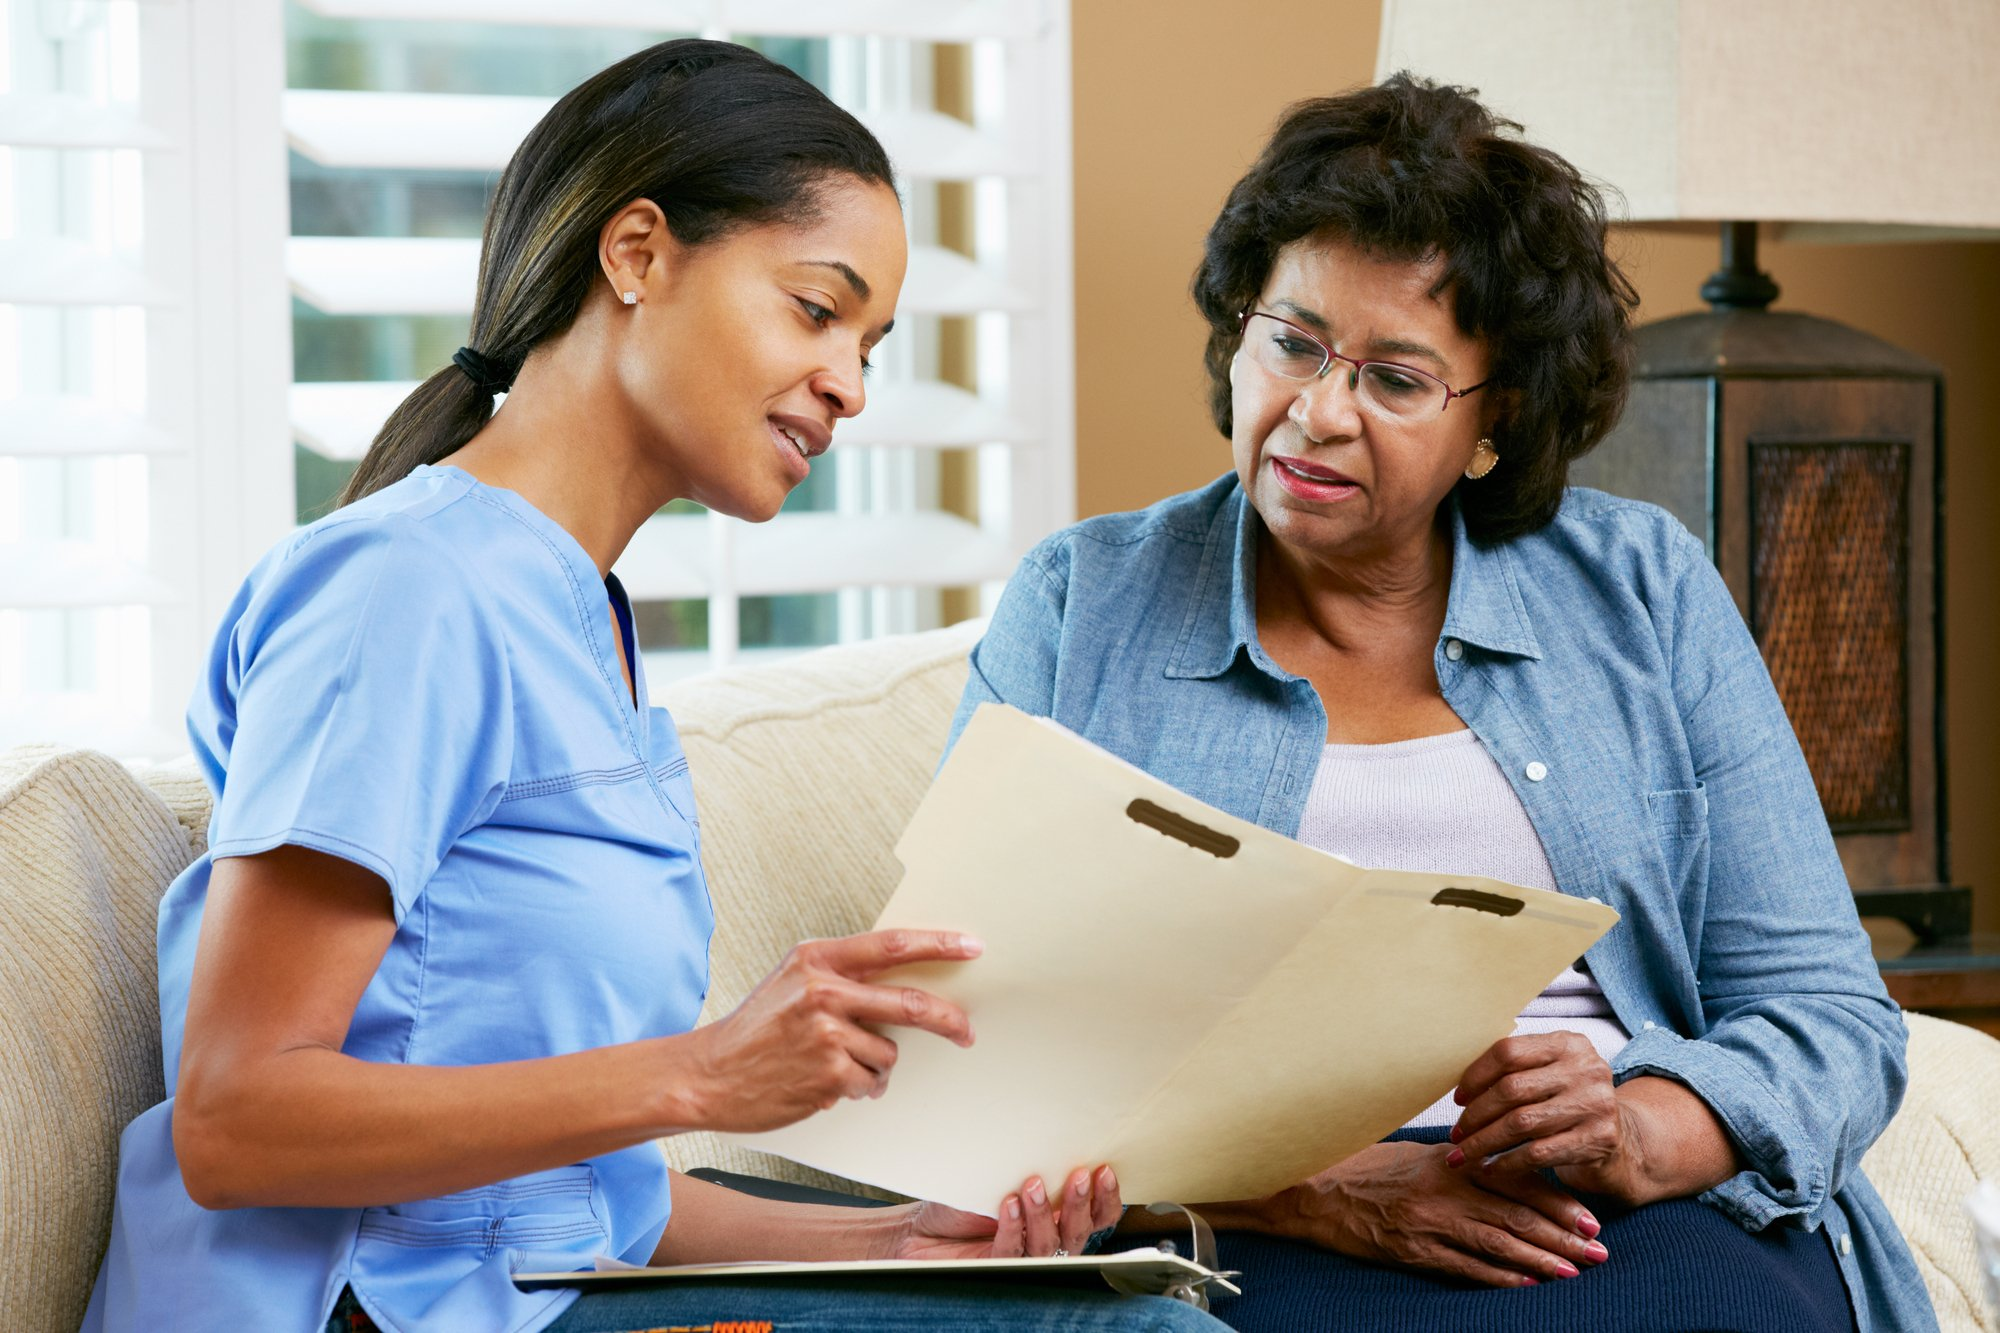 Doctor discussing records with senior Female patient in a healthcare setting